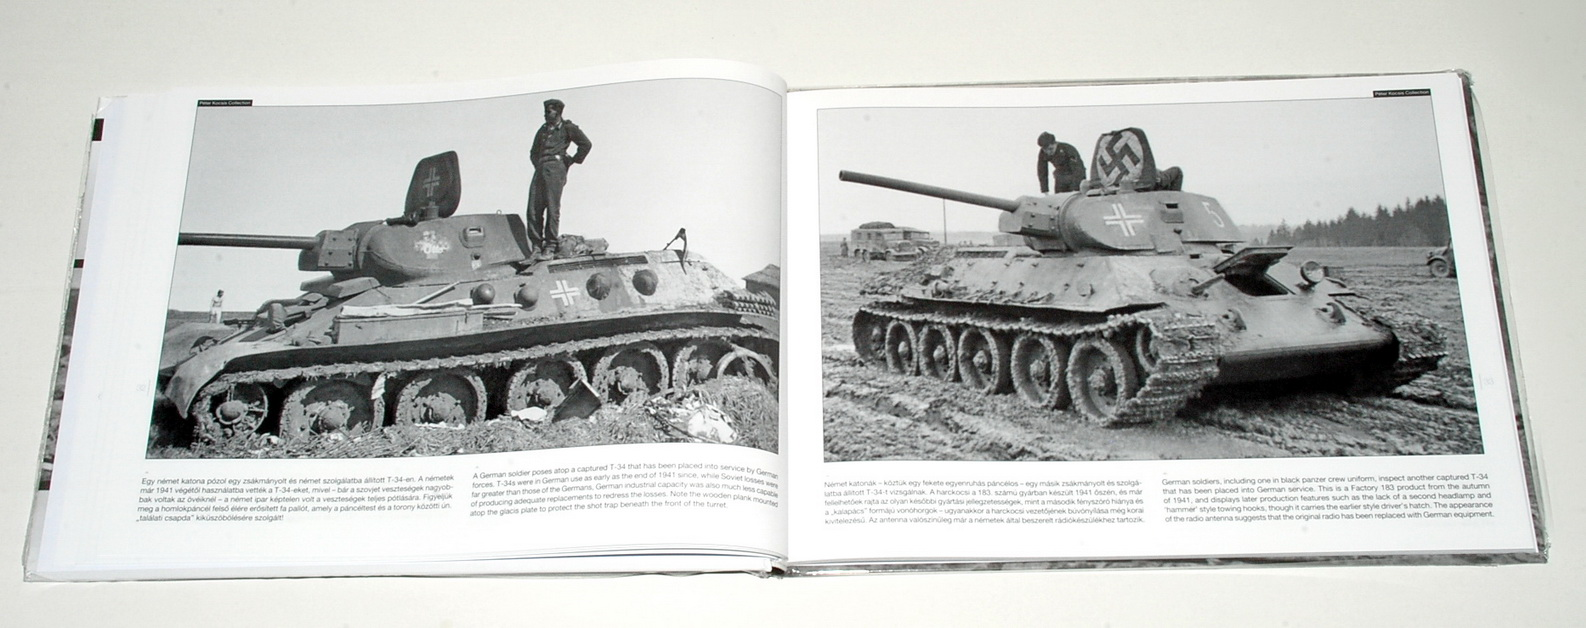 T-34 On The Battlefield 2, WWII Photobook Series Vol.17, by Neil Stokes (Peko Publishing)